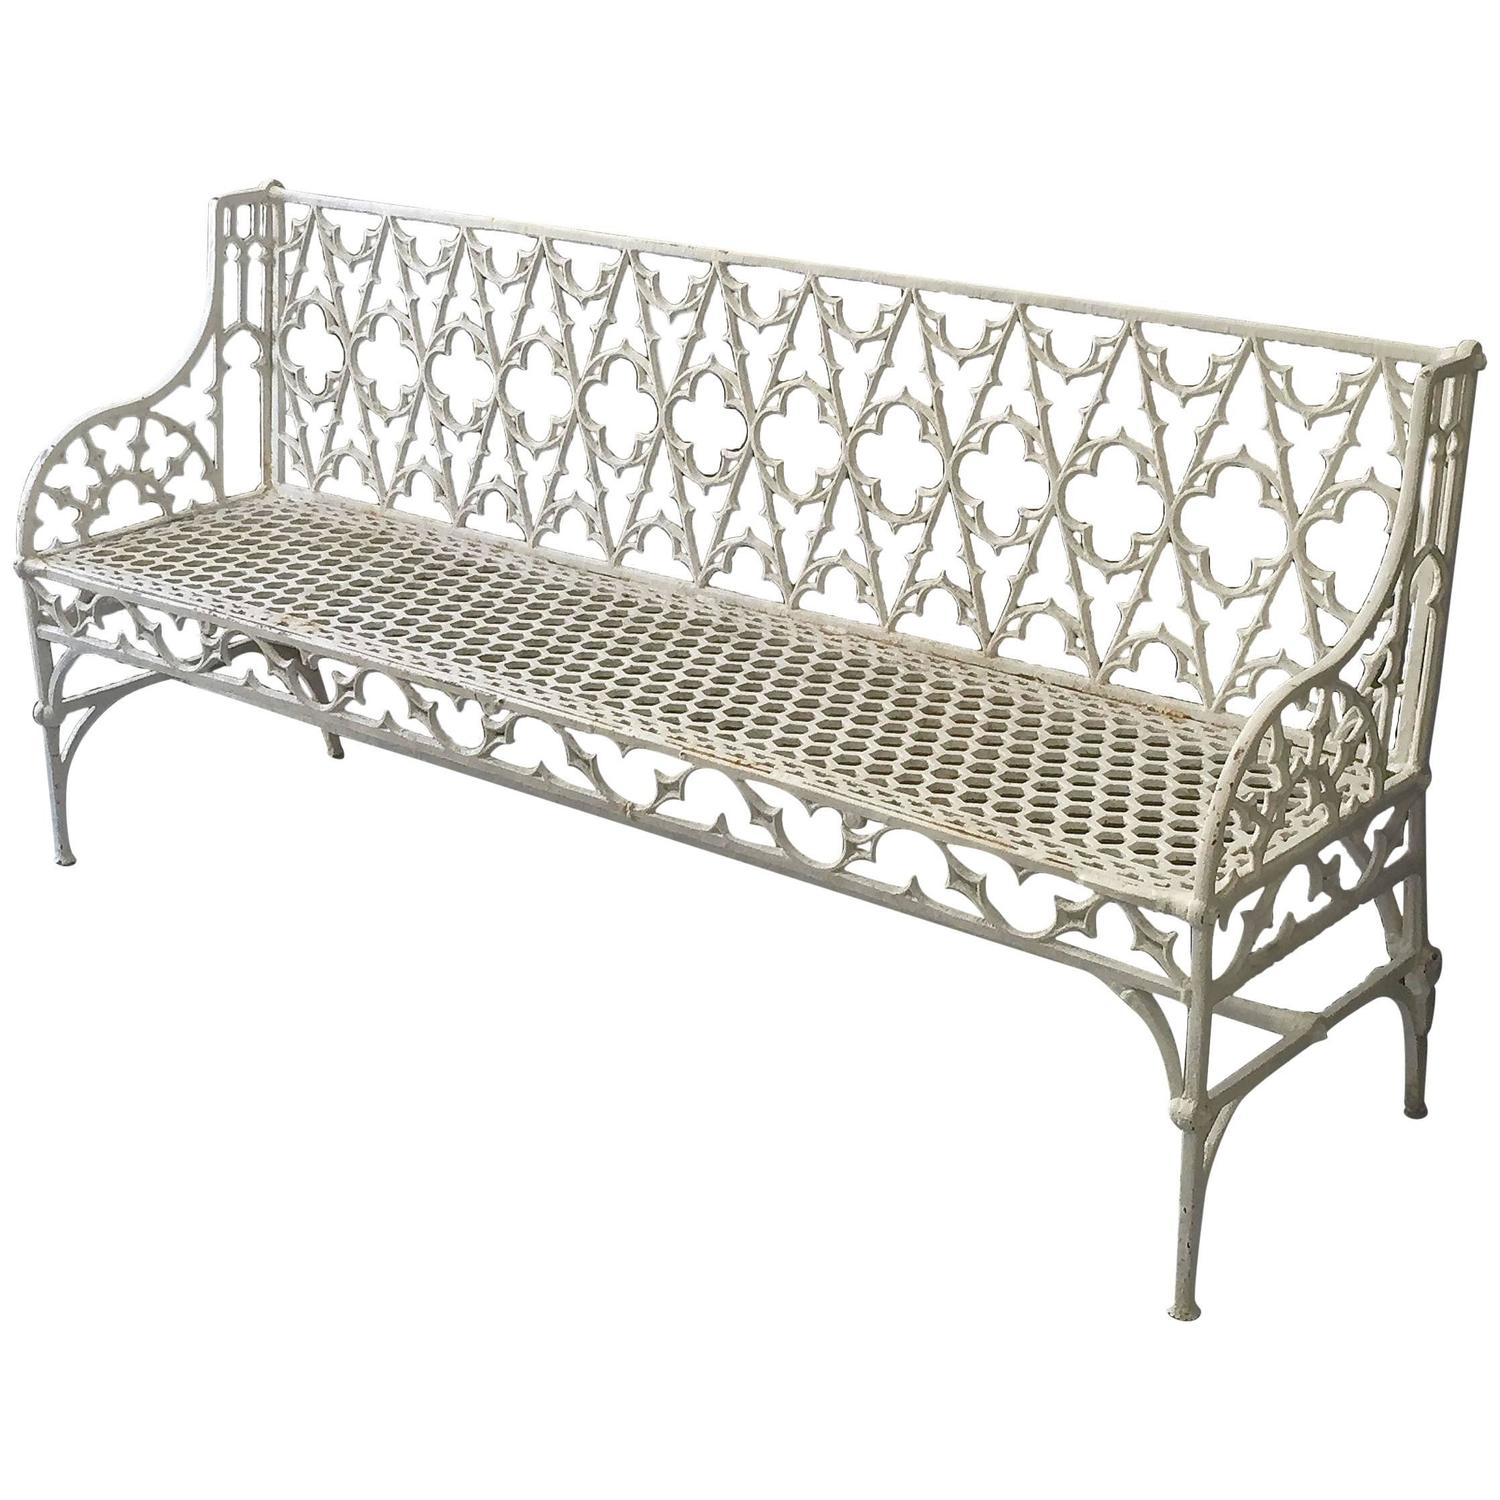 Superior Large French Val Du0027osne Cast Iron Garden Bench At 1stdibs